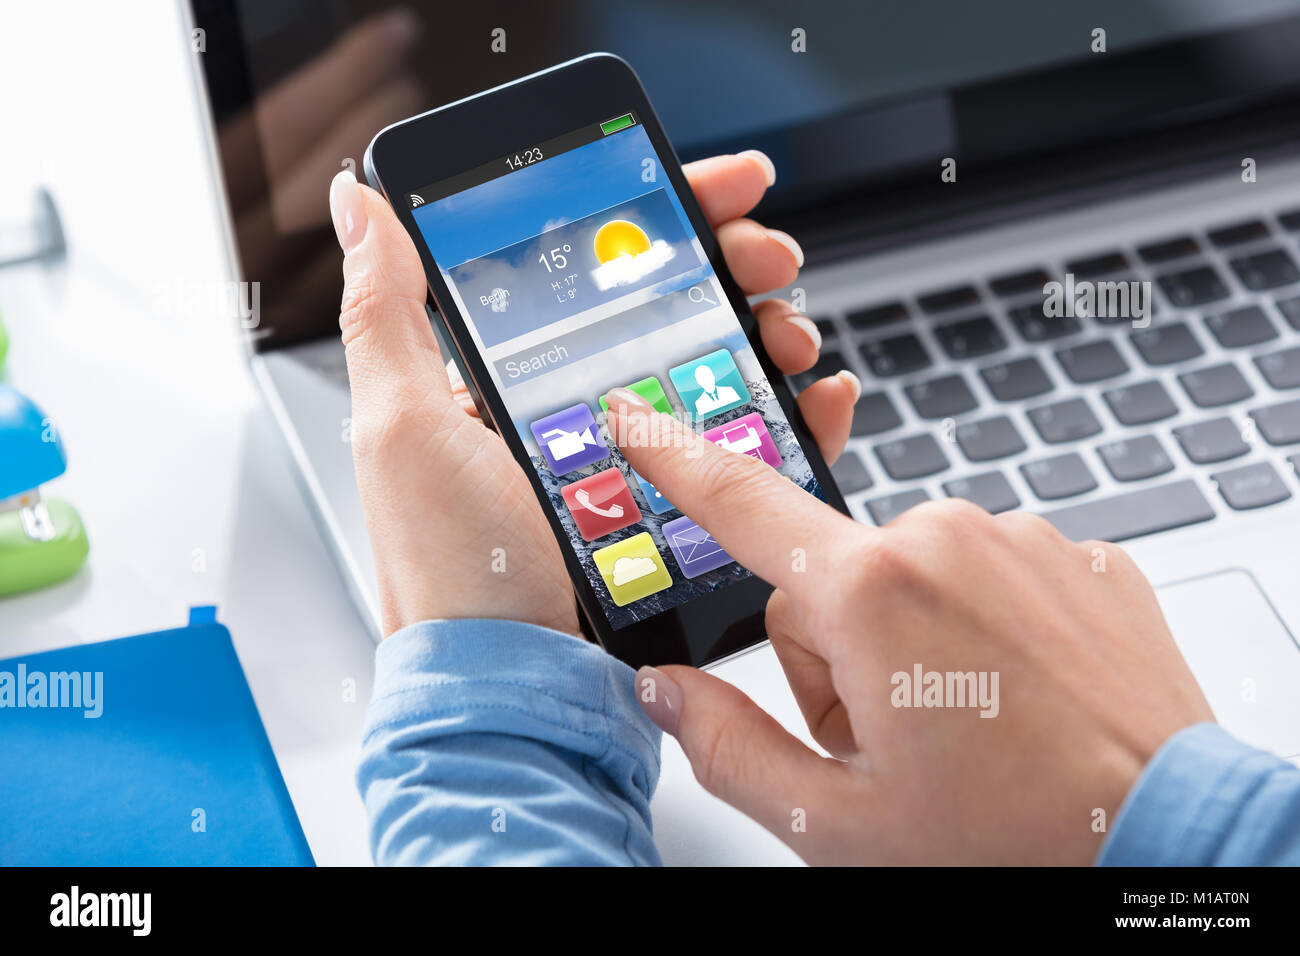 Close-up Of A Woman Using Touchscreen Smart Phone With Applications On Screen - Stock Image